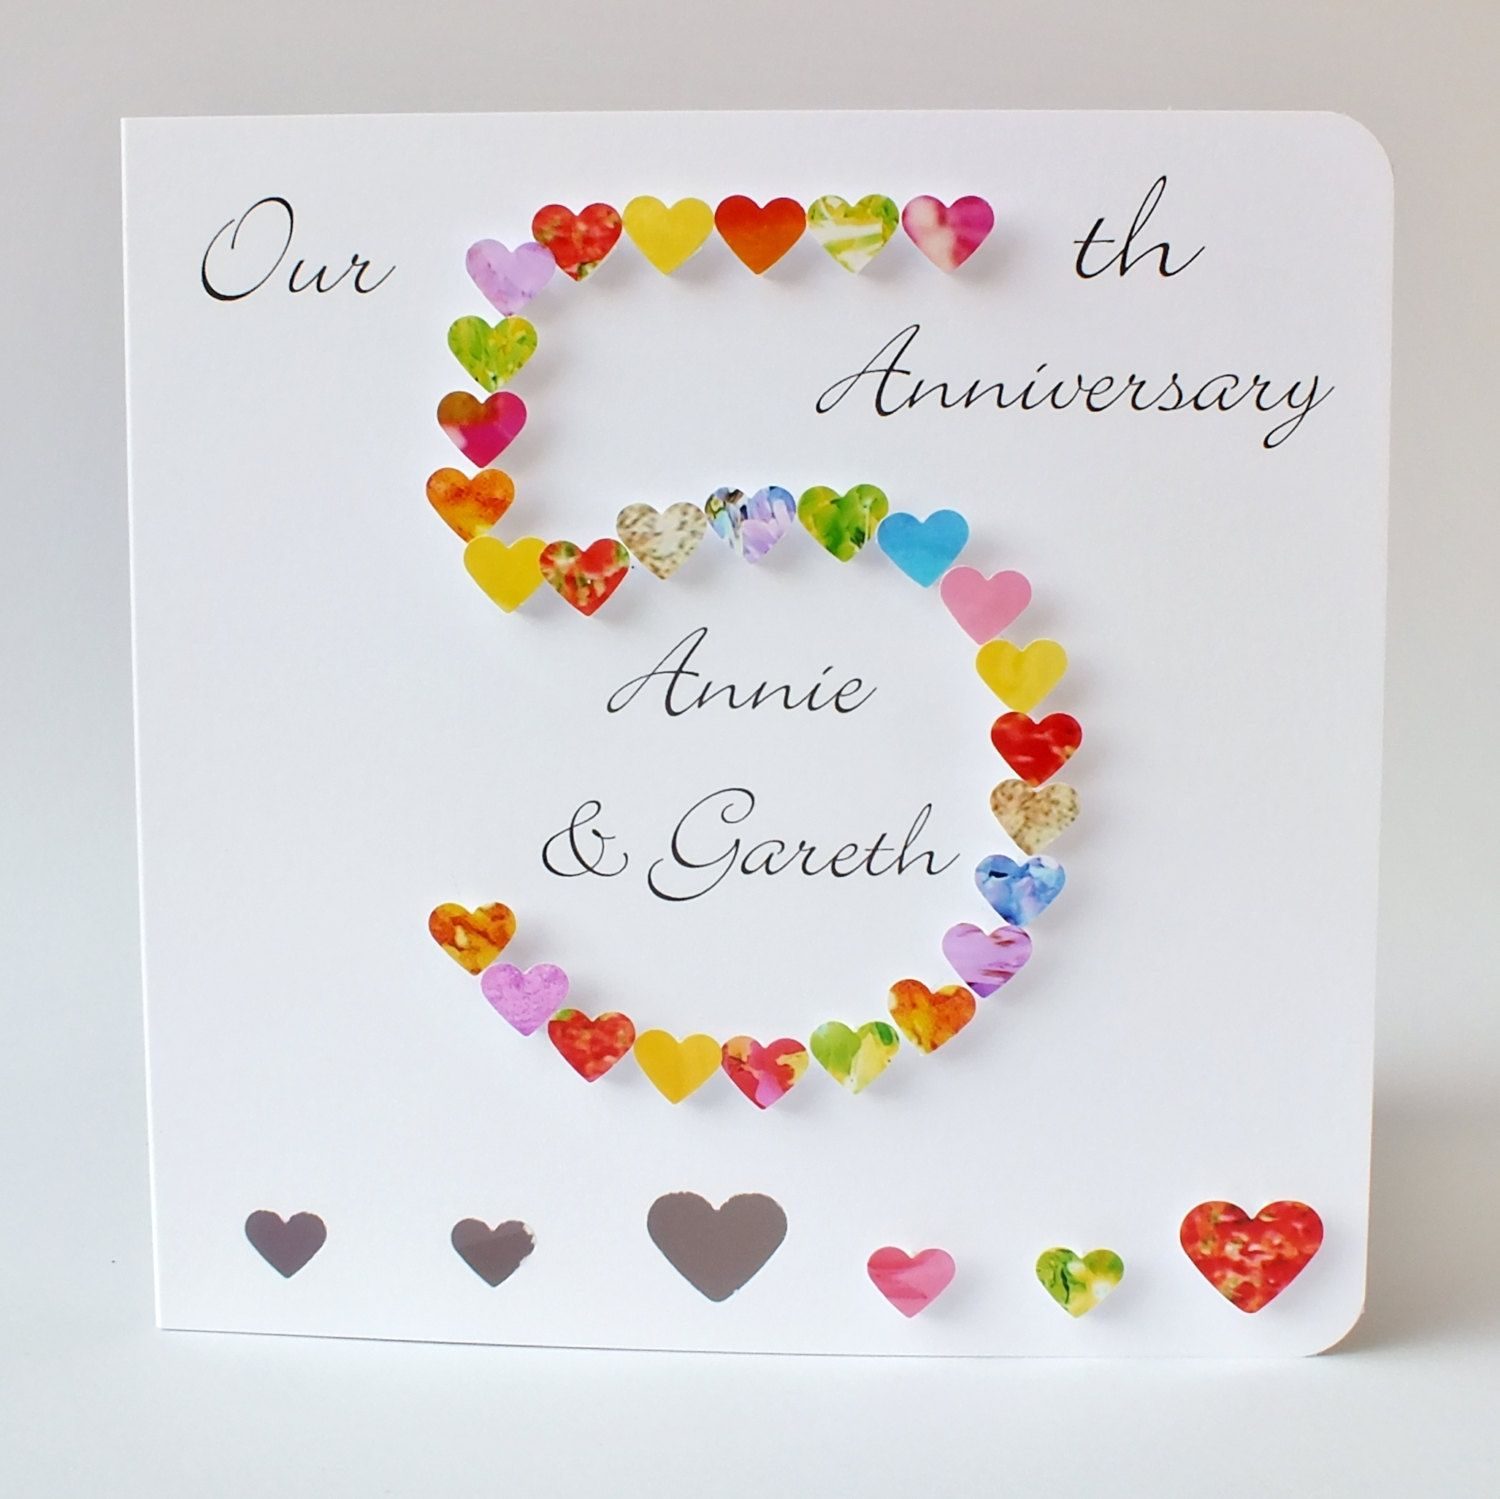 5th wedding anniversary card personalised 5th anniversary card handmade 3d 5th wedding anniversary card personalised fifth anniversary card personalized husband wife card kristyandbryce Choice Image